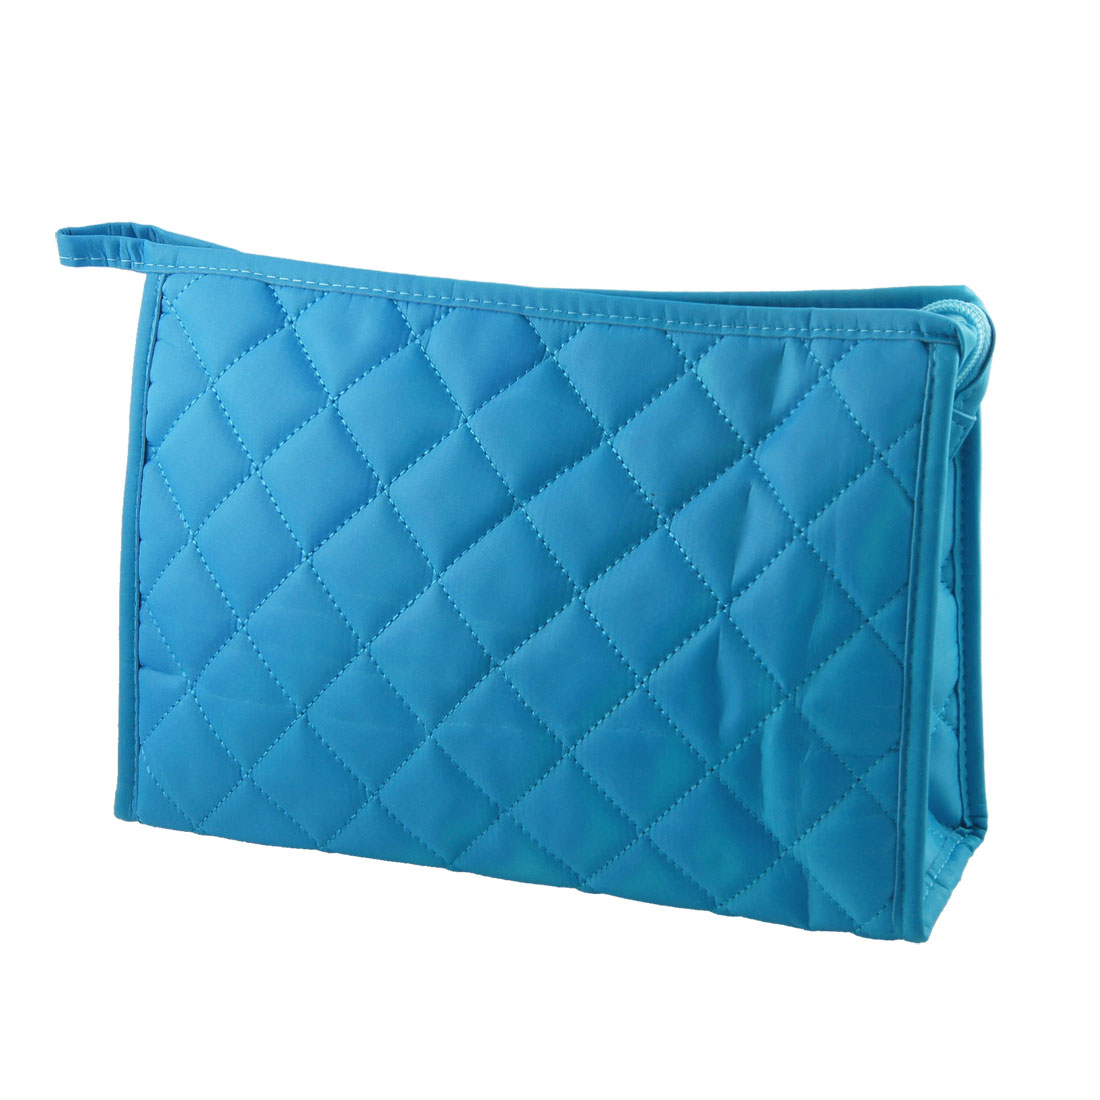 "10.6"" Long Grid Pattern Rectangle Shape Makeup Zipper Bag Light Blue for Ladies"